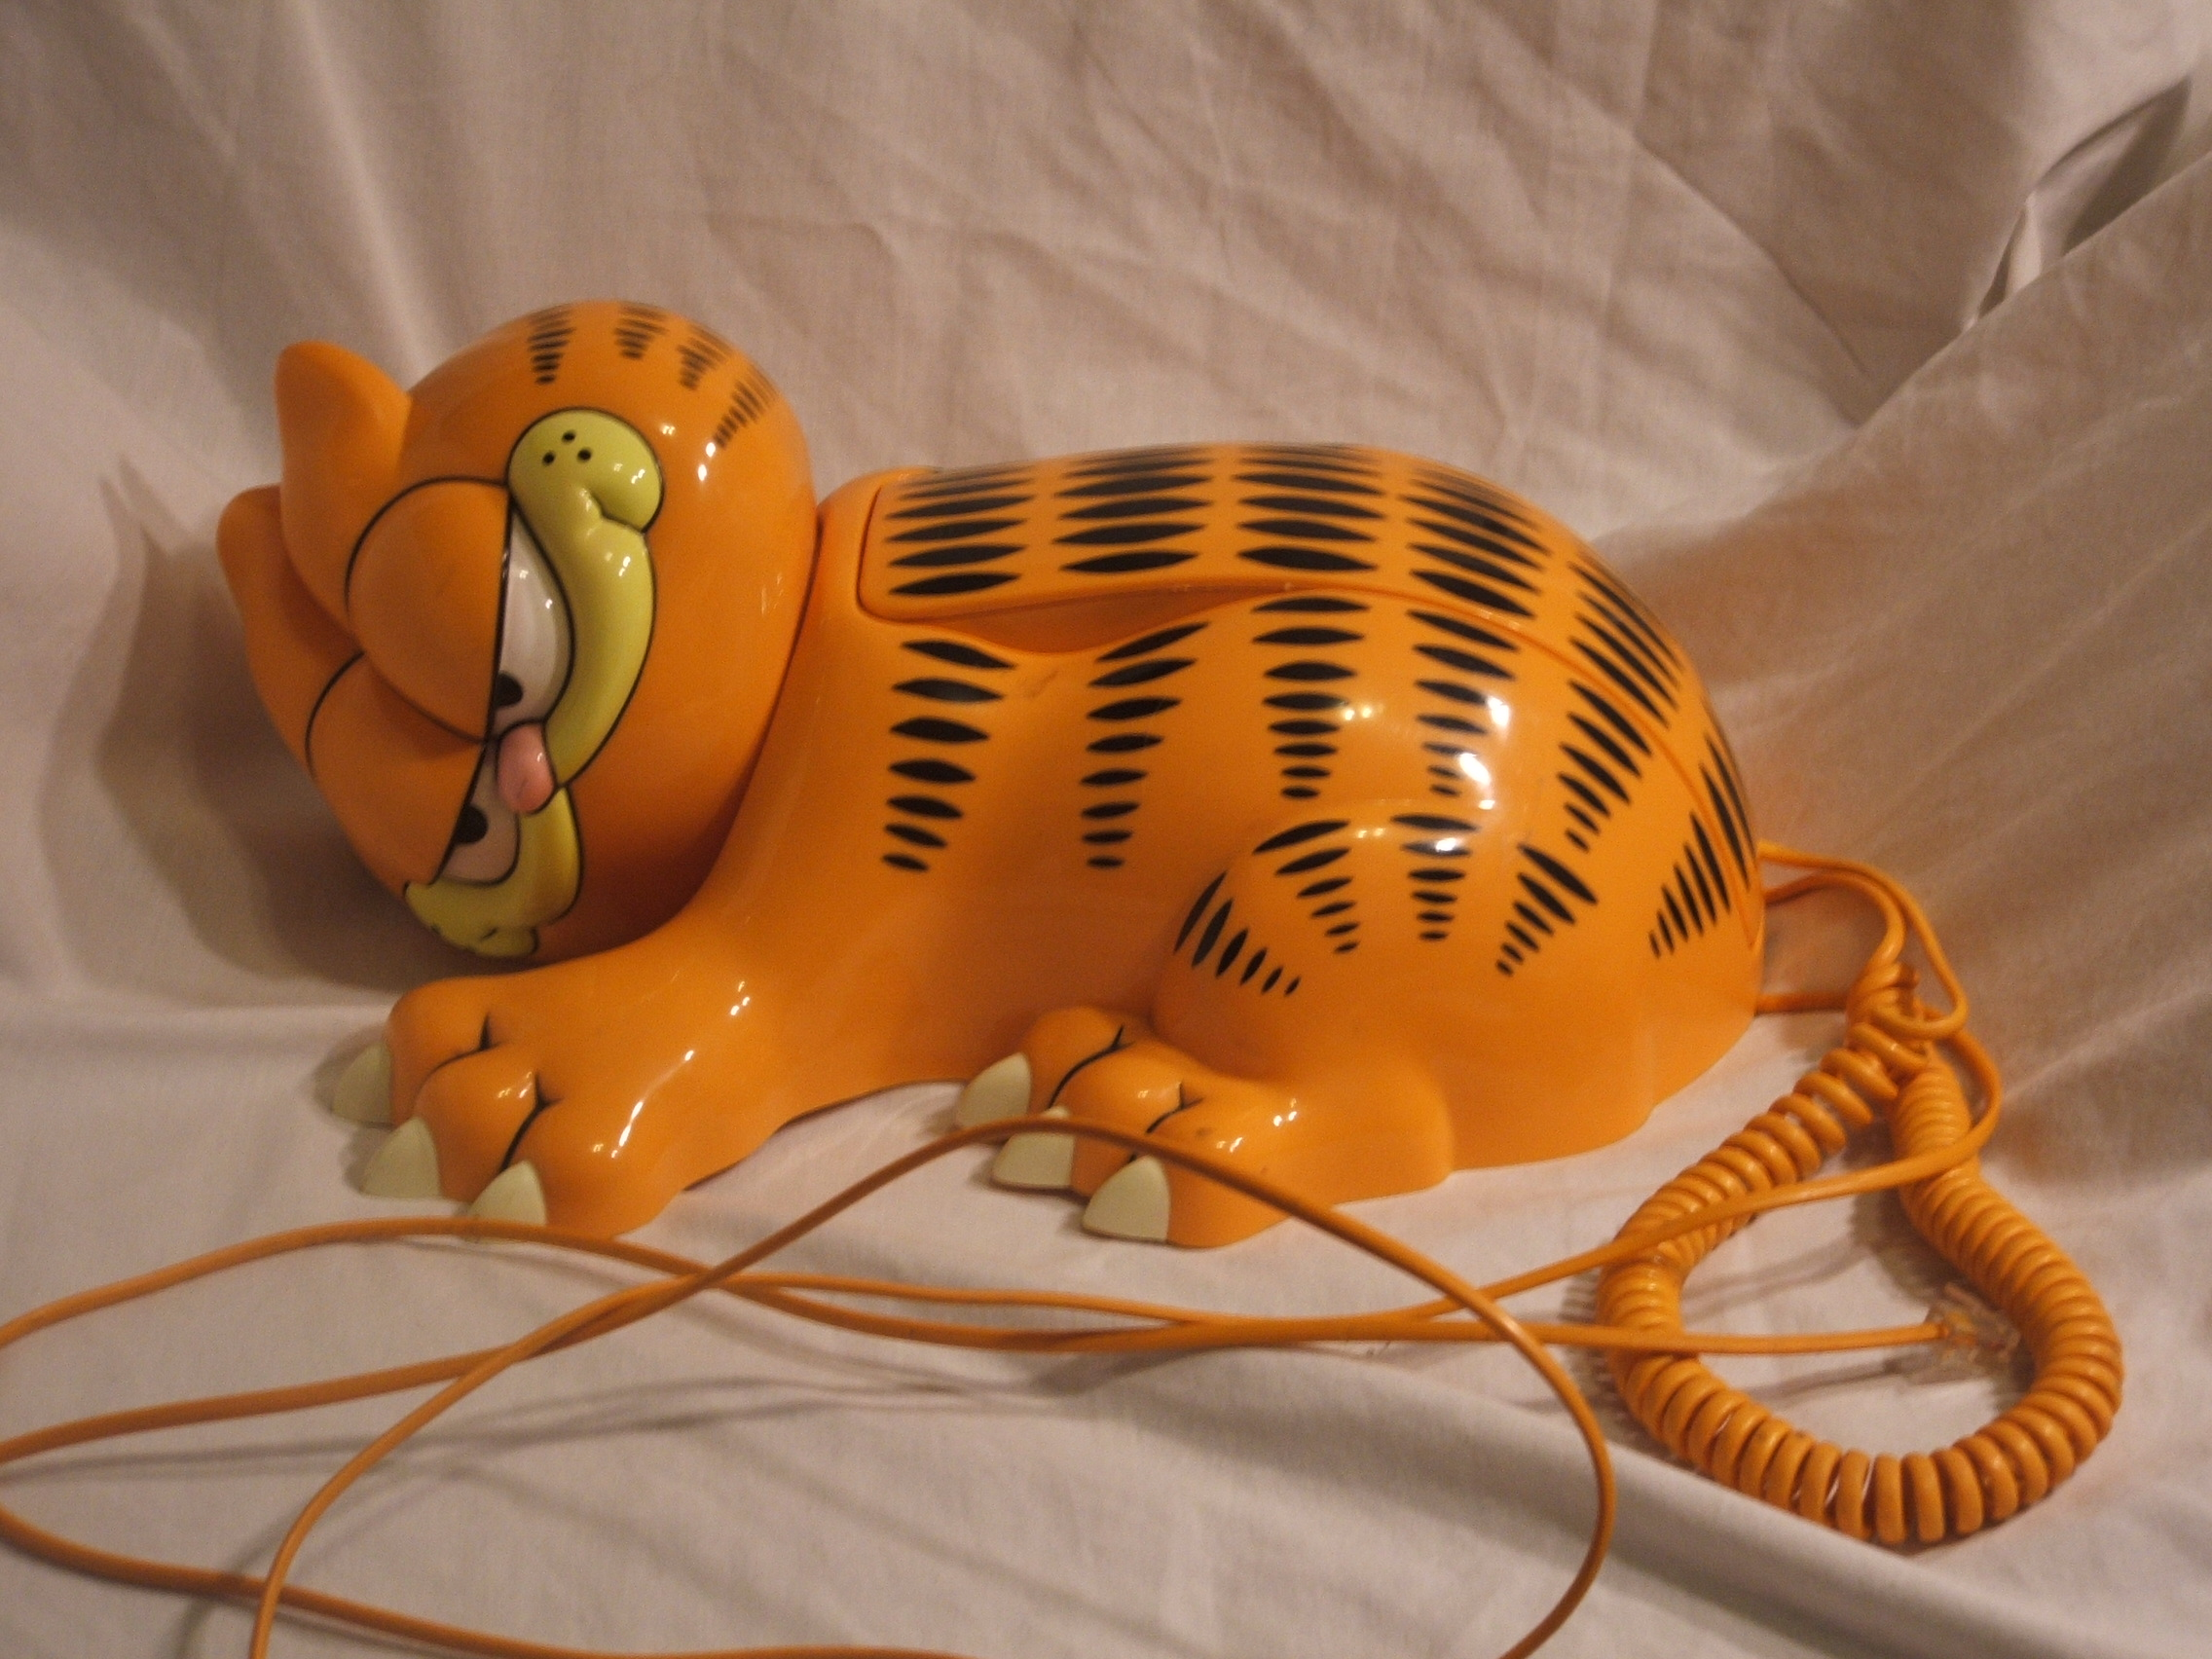 Garfield Telephone - PW Products Reviews